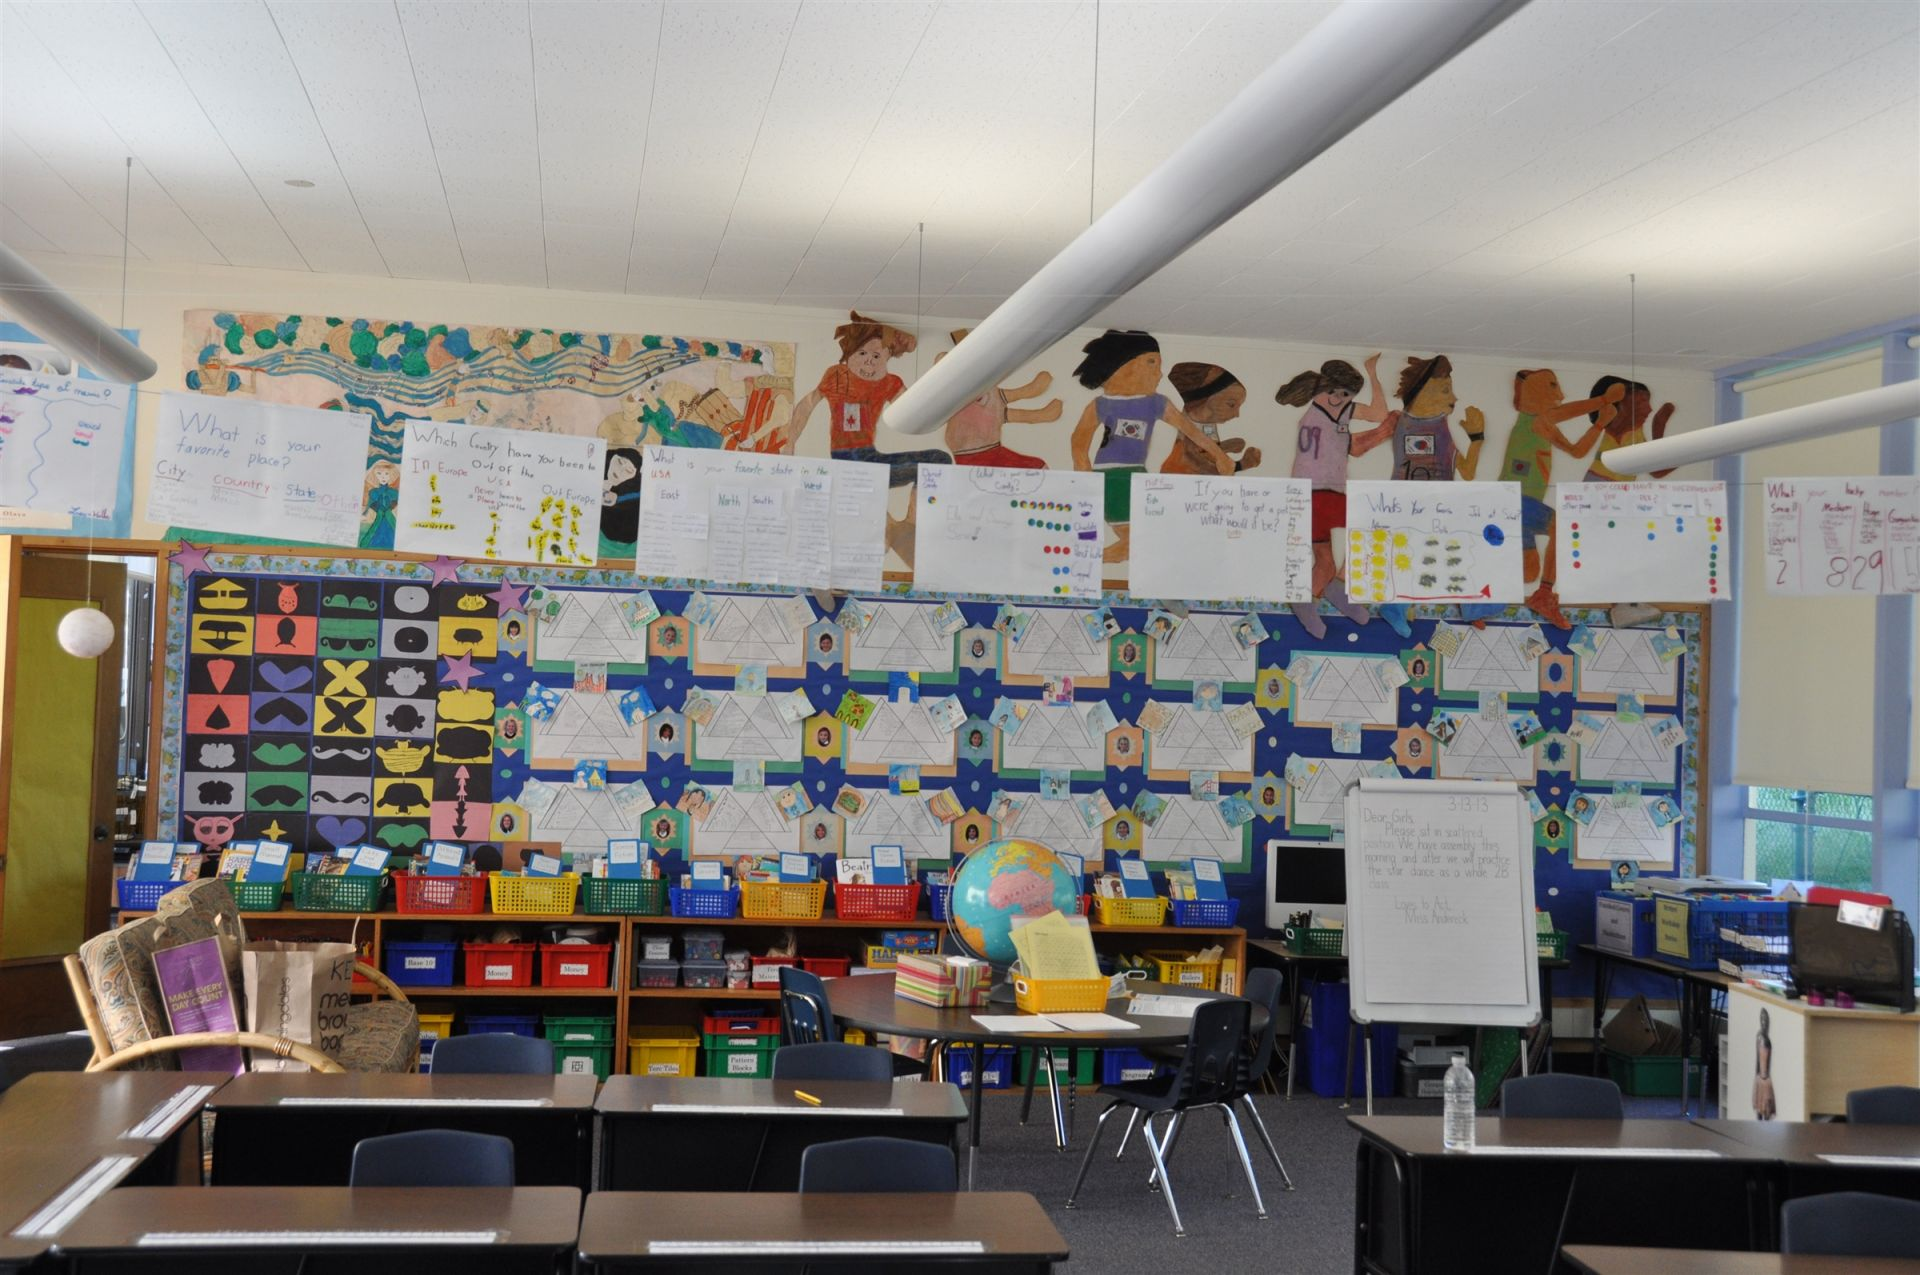 A Lower School classroom shows off a variety of class projects.